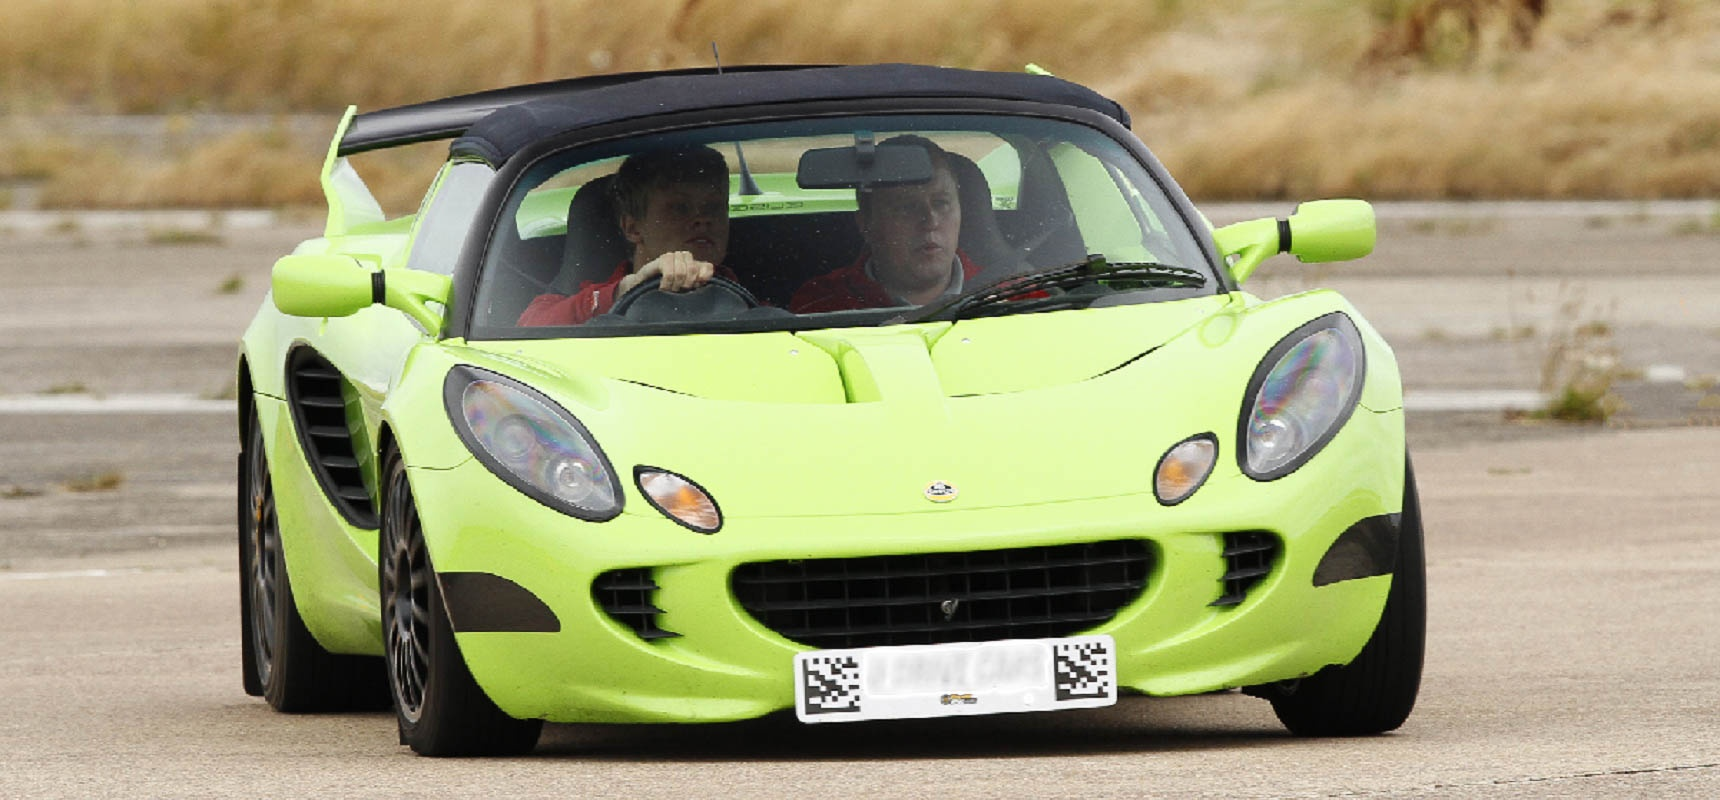 5 Super Car Driving Experience - Oxfordshire-2